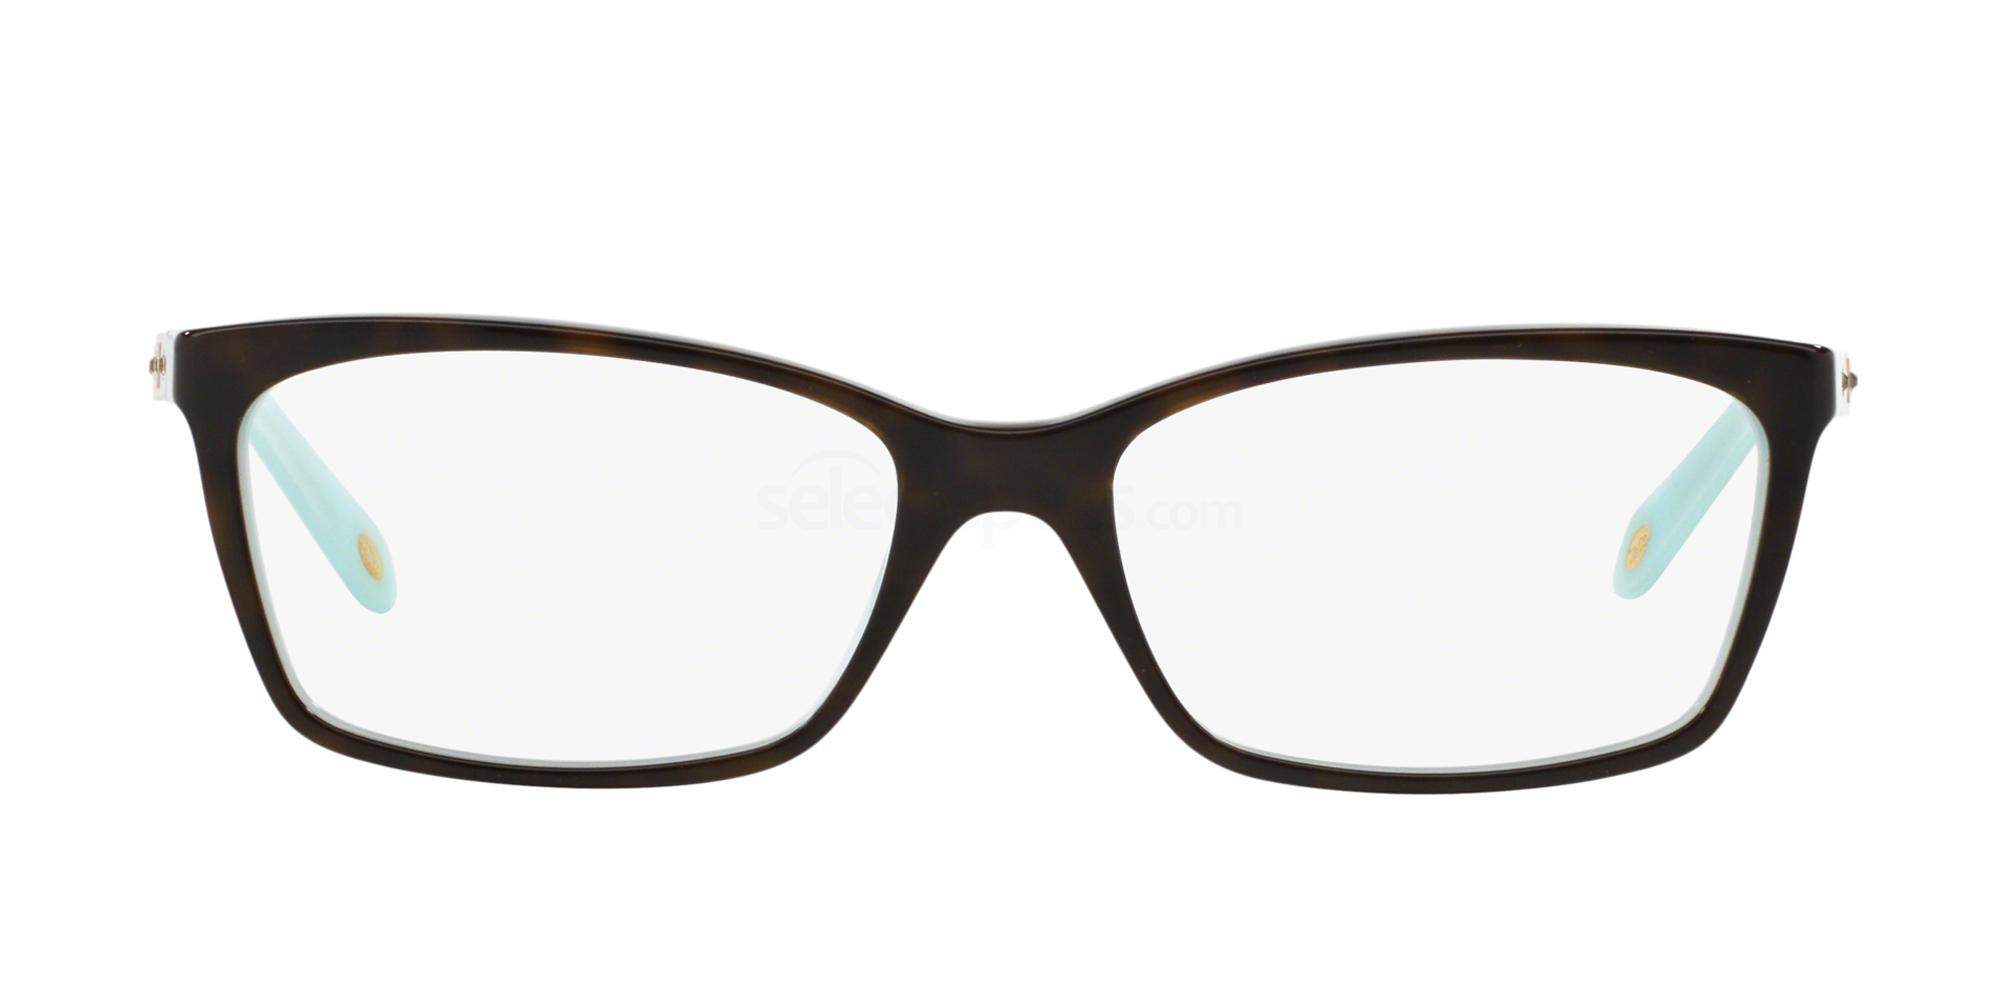 8134 TF2103B Glasses, Tiffany & Co.